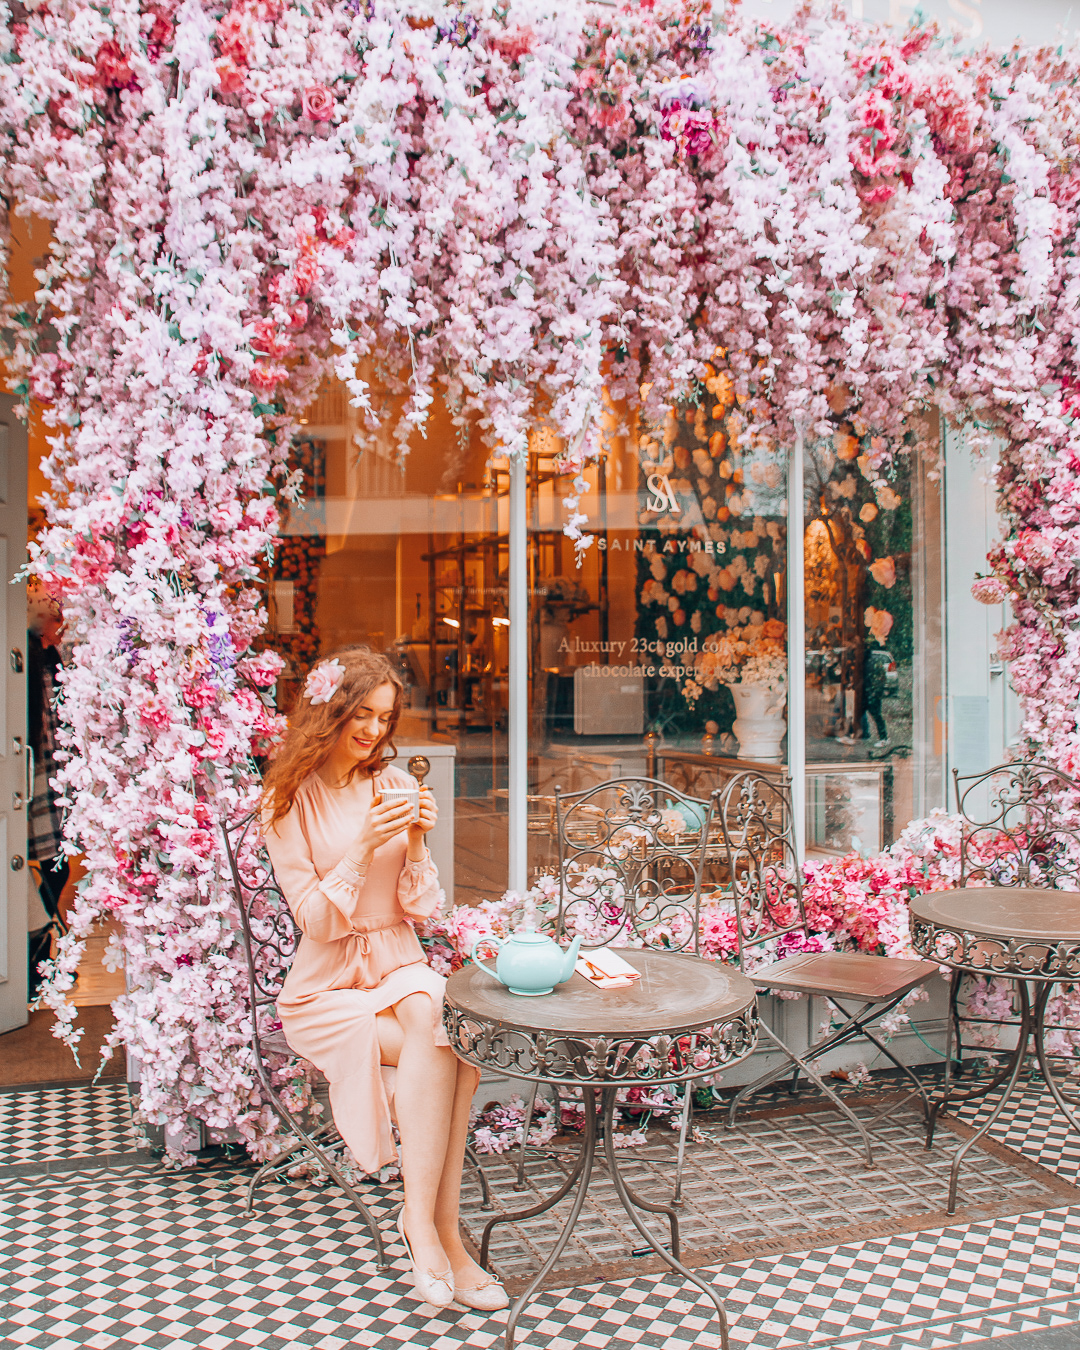 Coffee at a pretty cafe in London with pink flowers